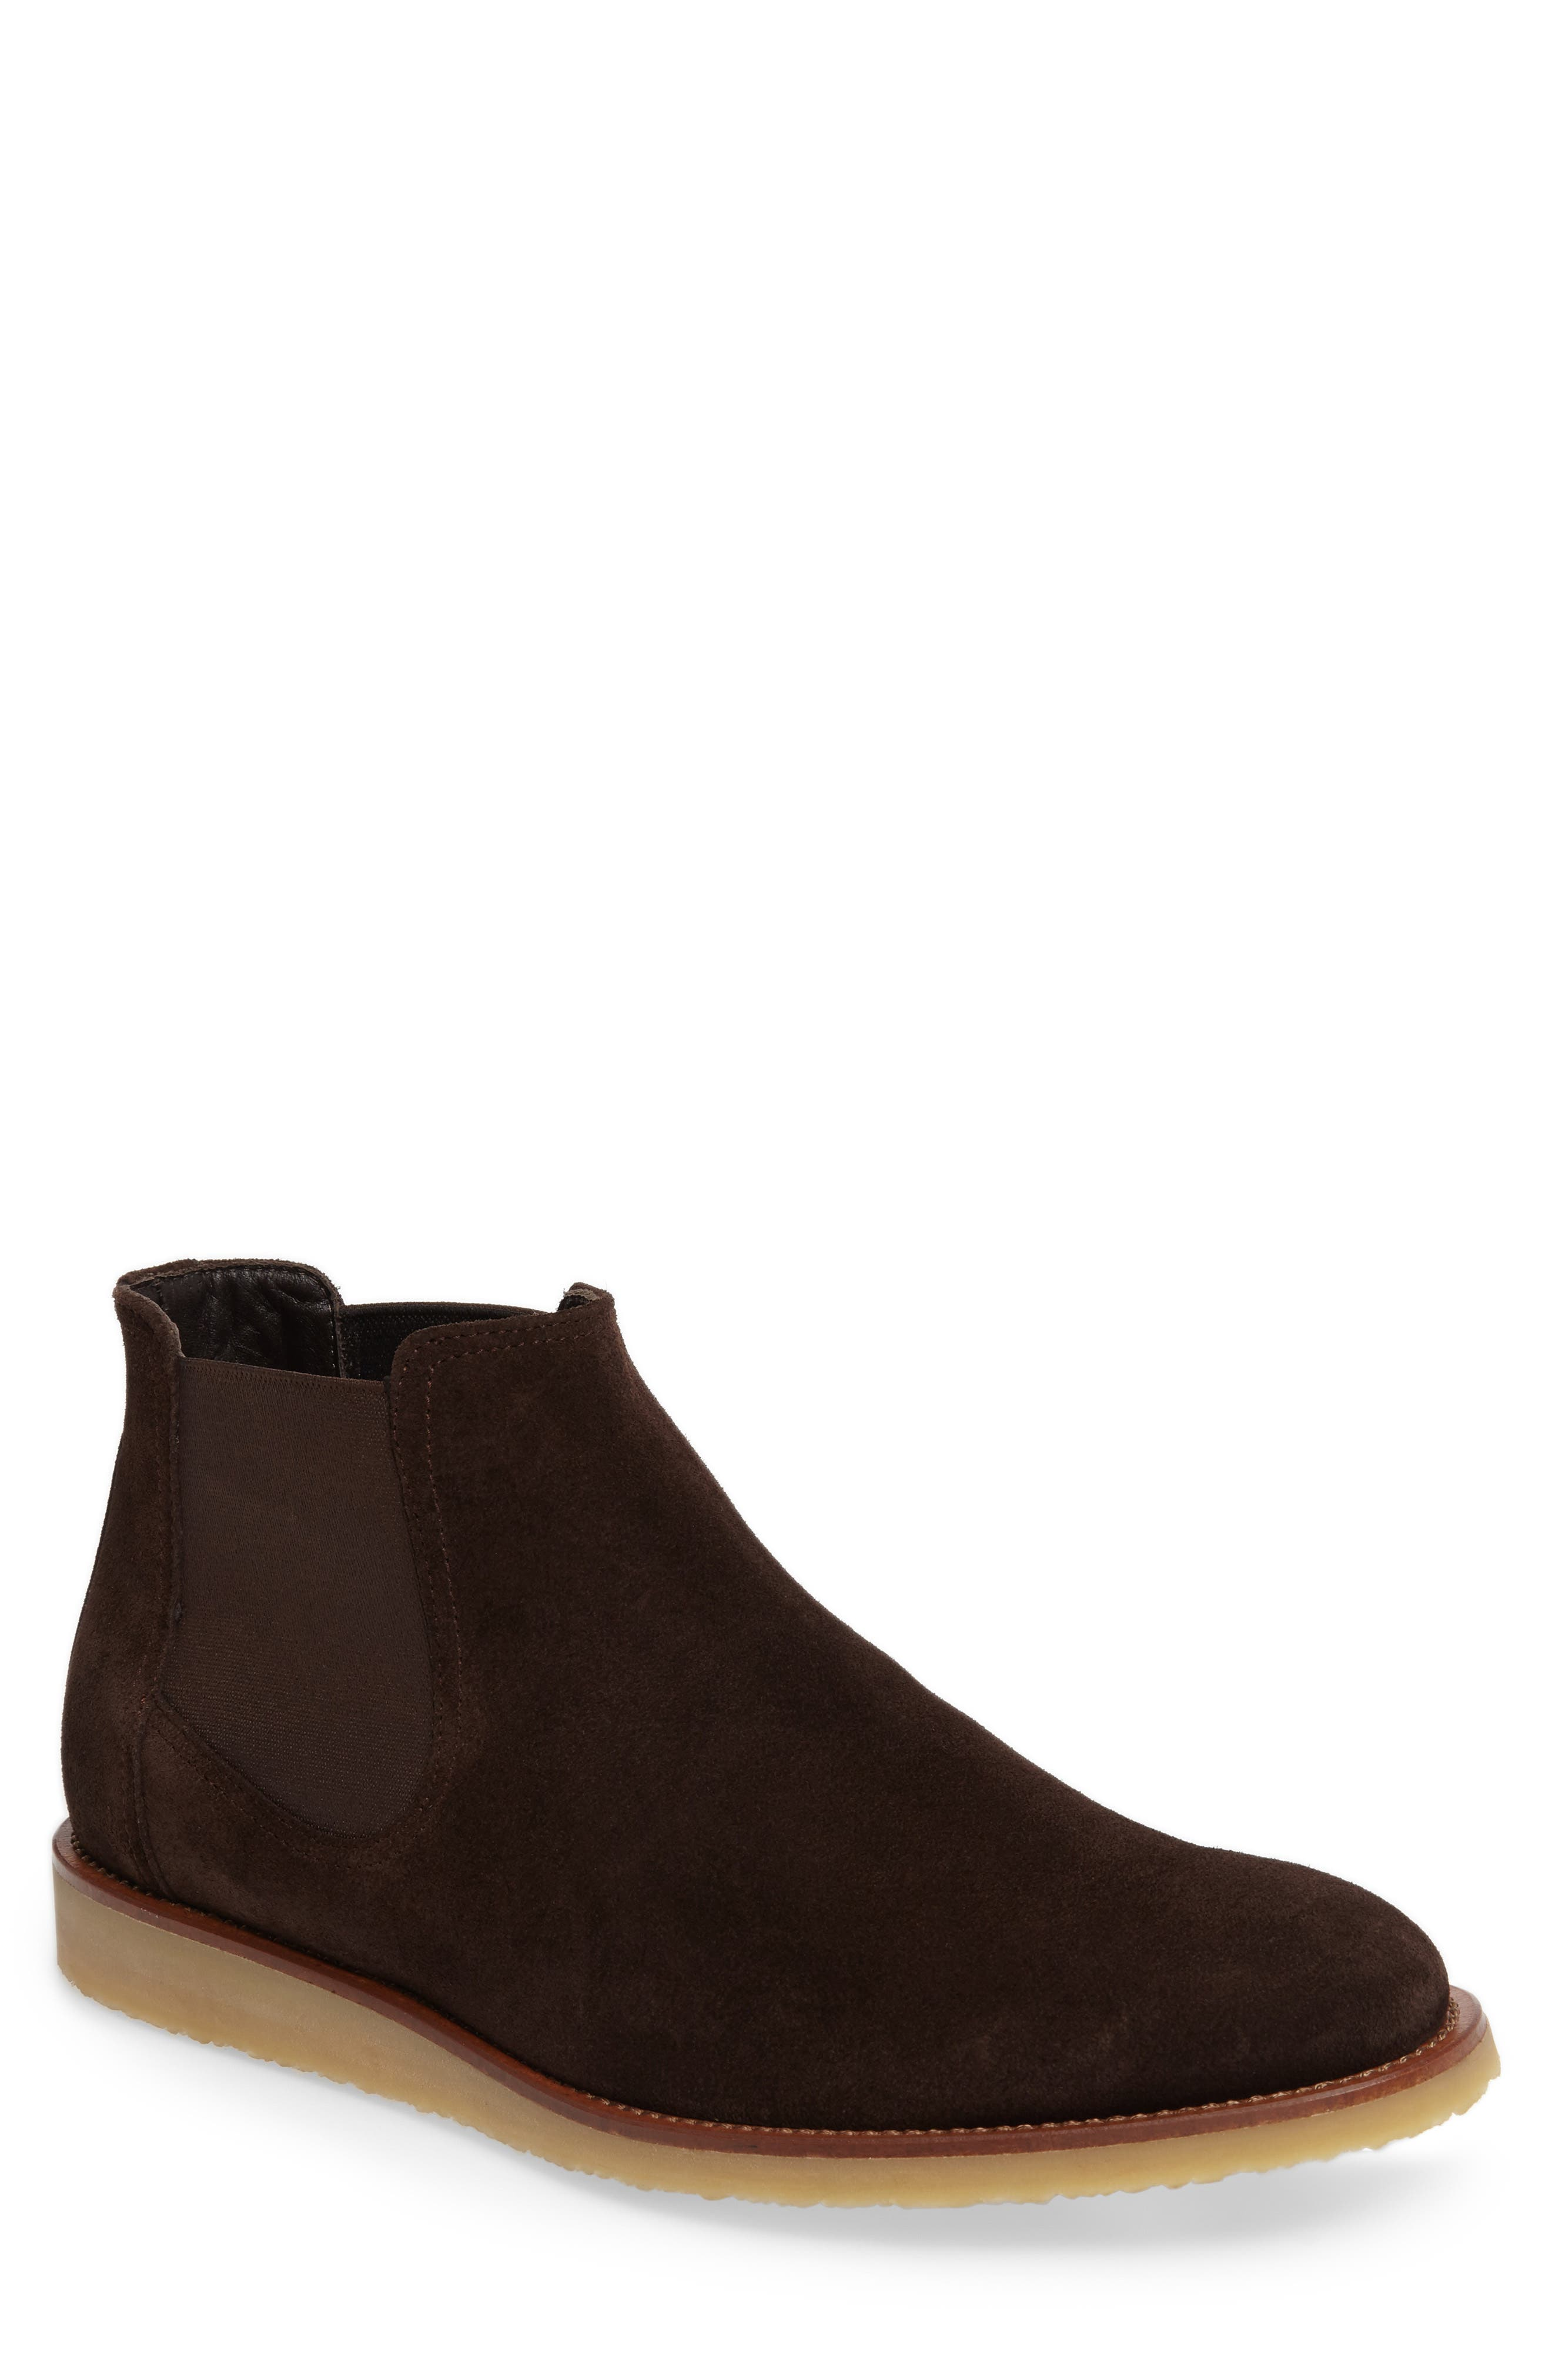 Main Image - To Boot New York March Chelsea Boot (Men)